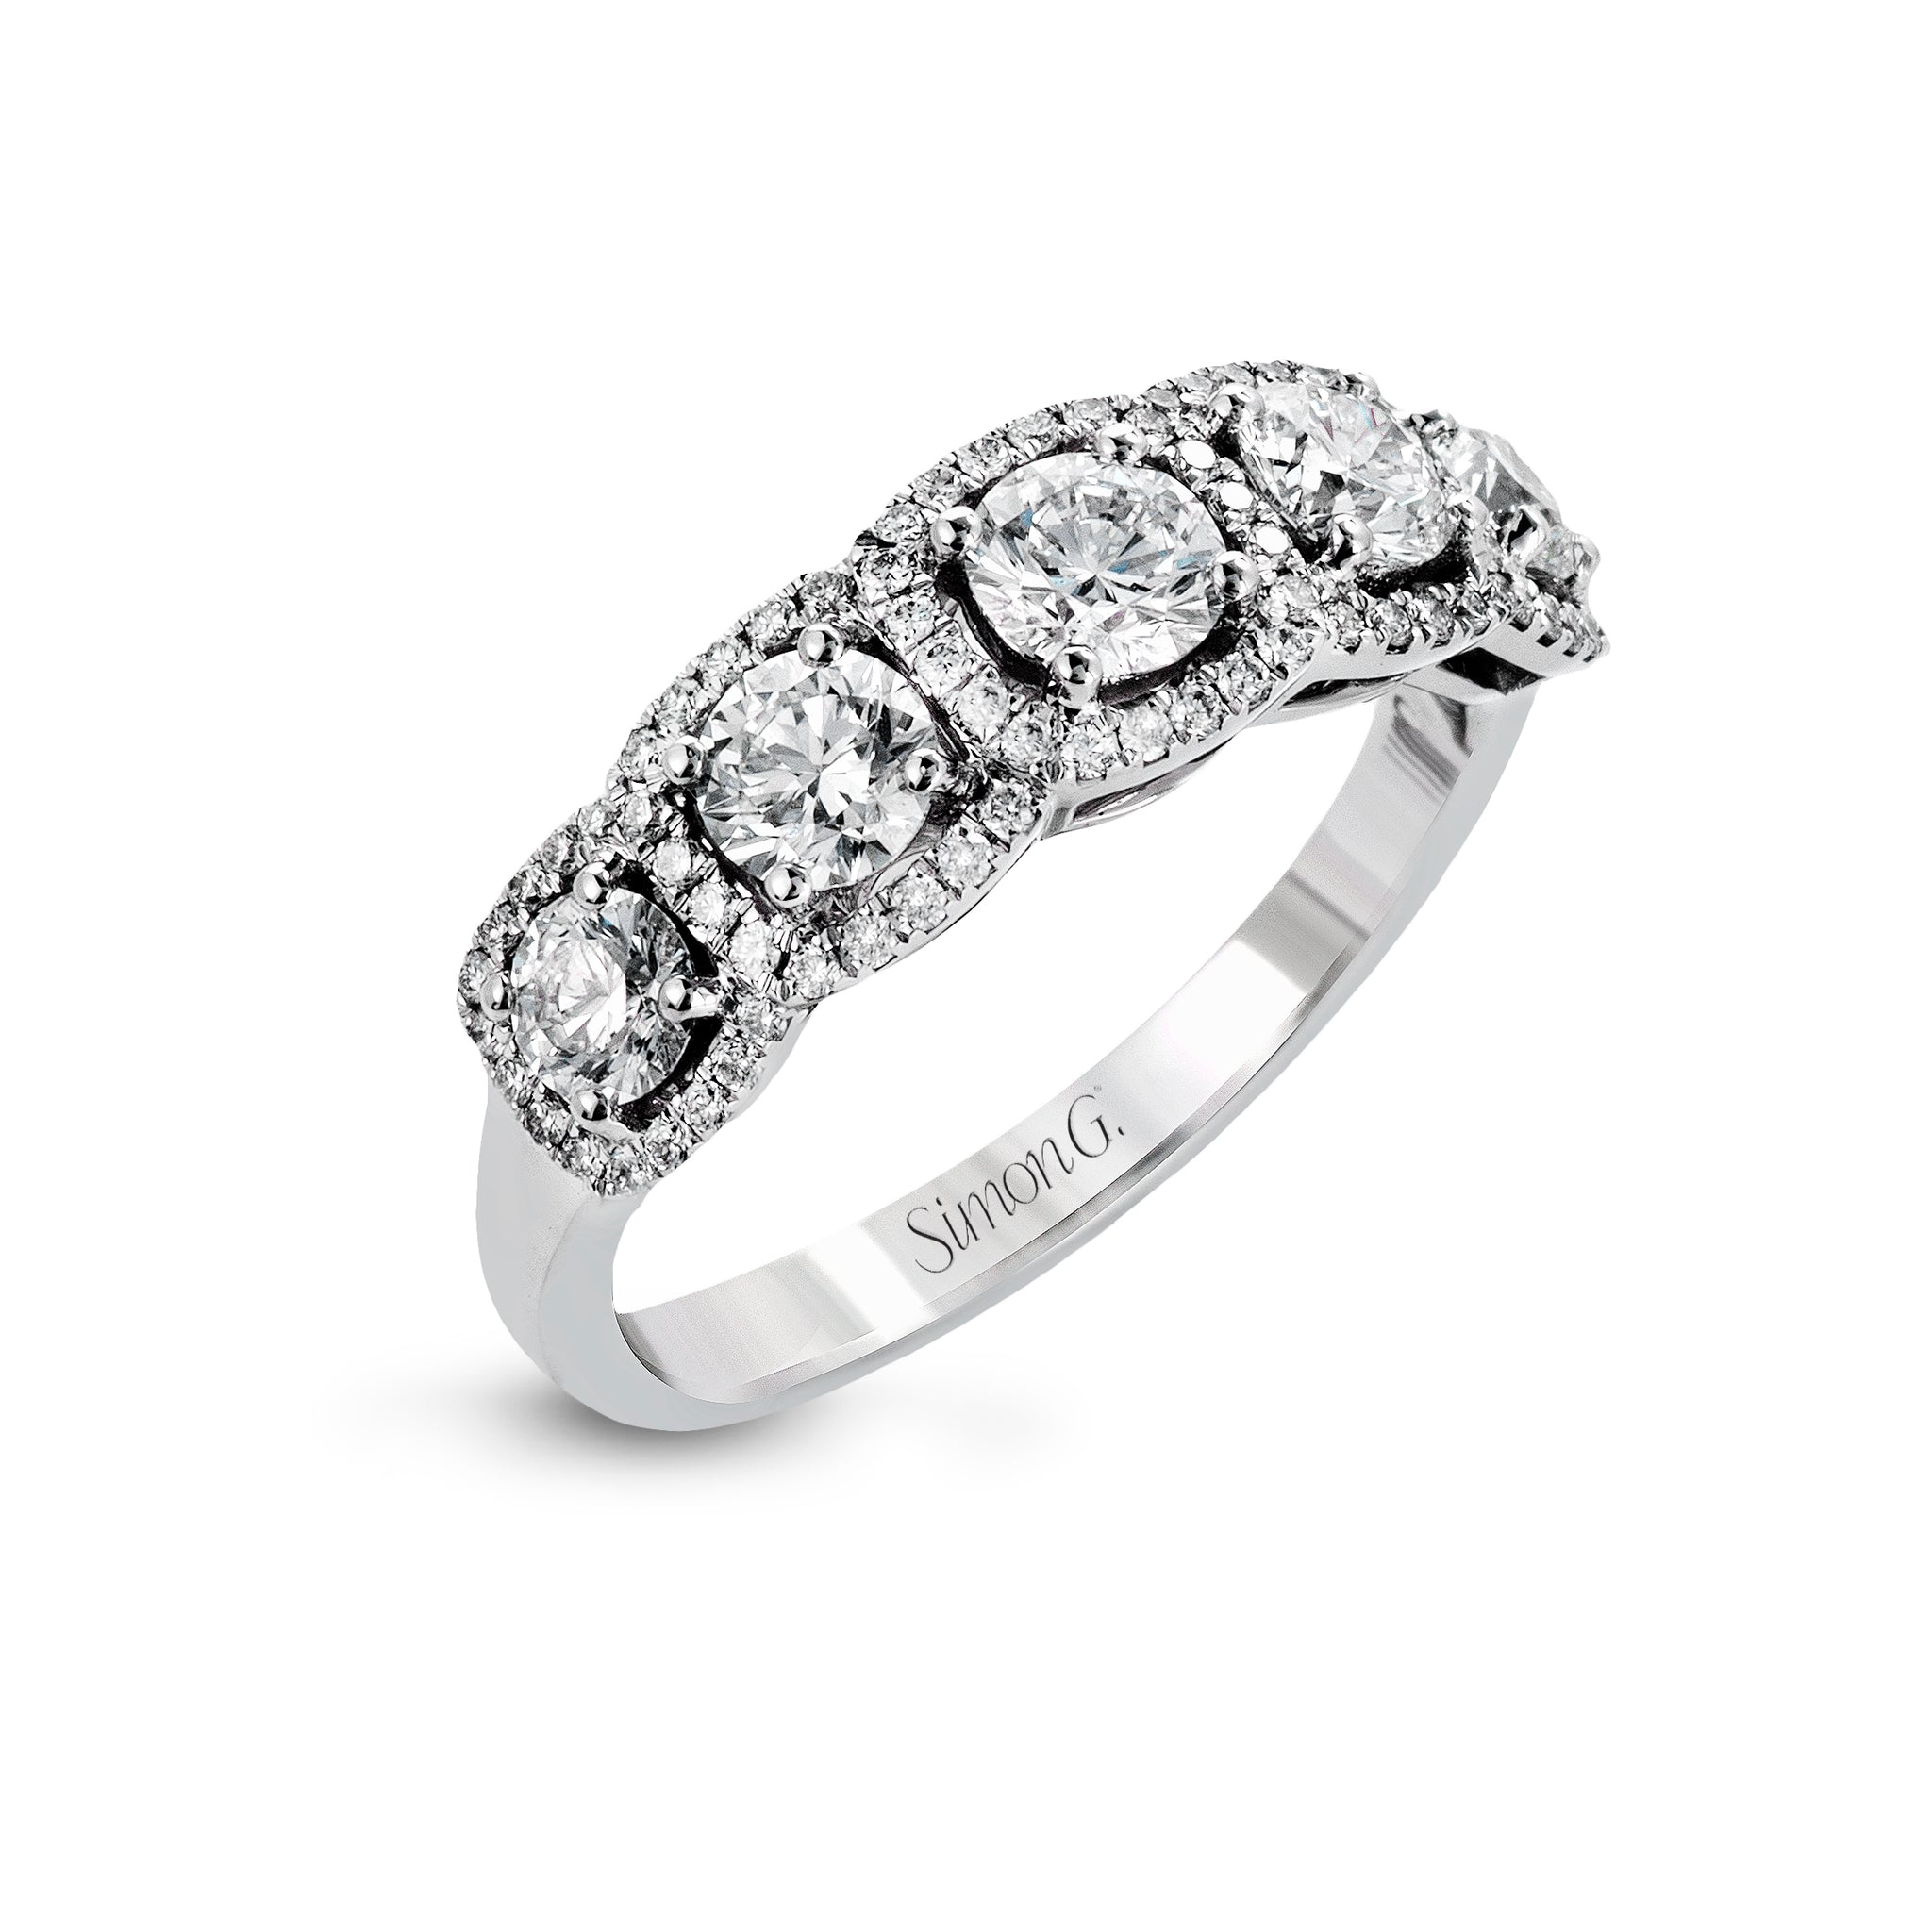 Simon G 18K White Gold Five Stone Diamond Ring